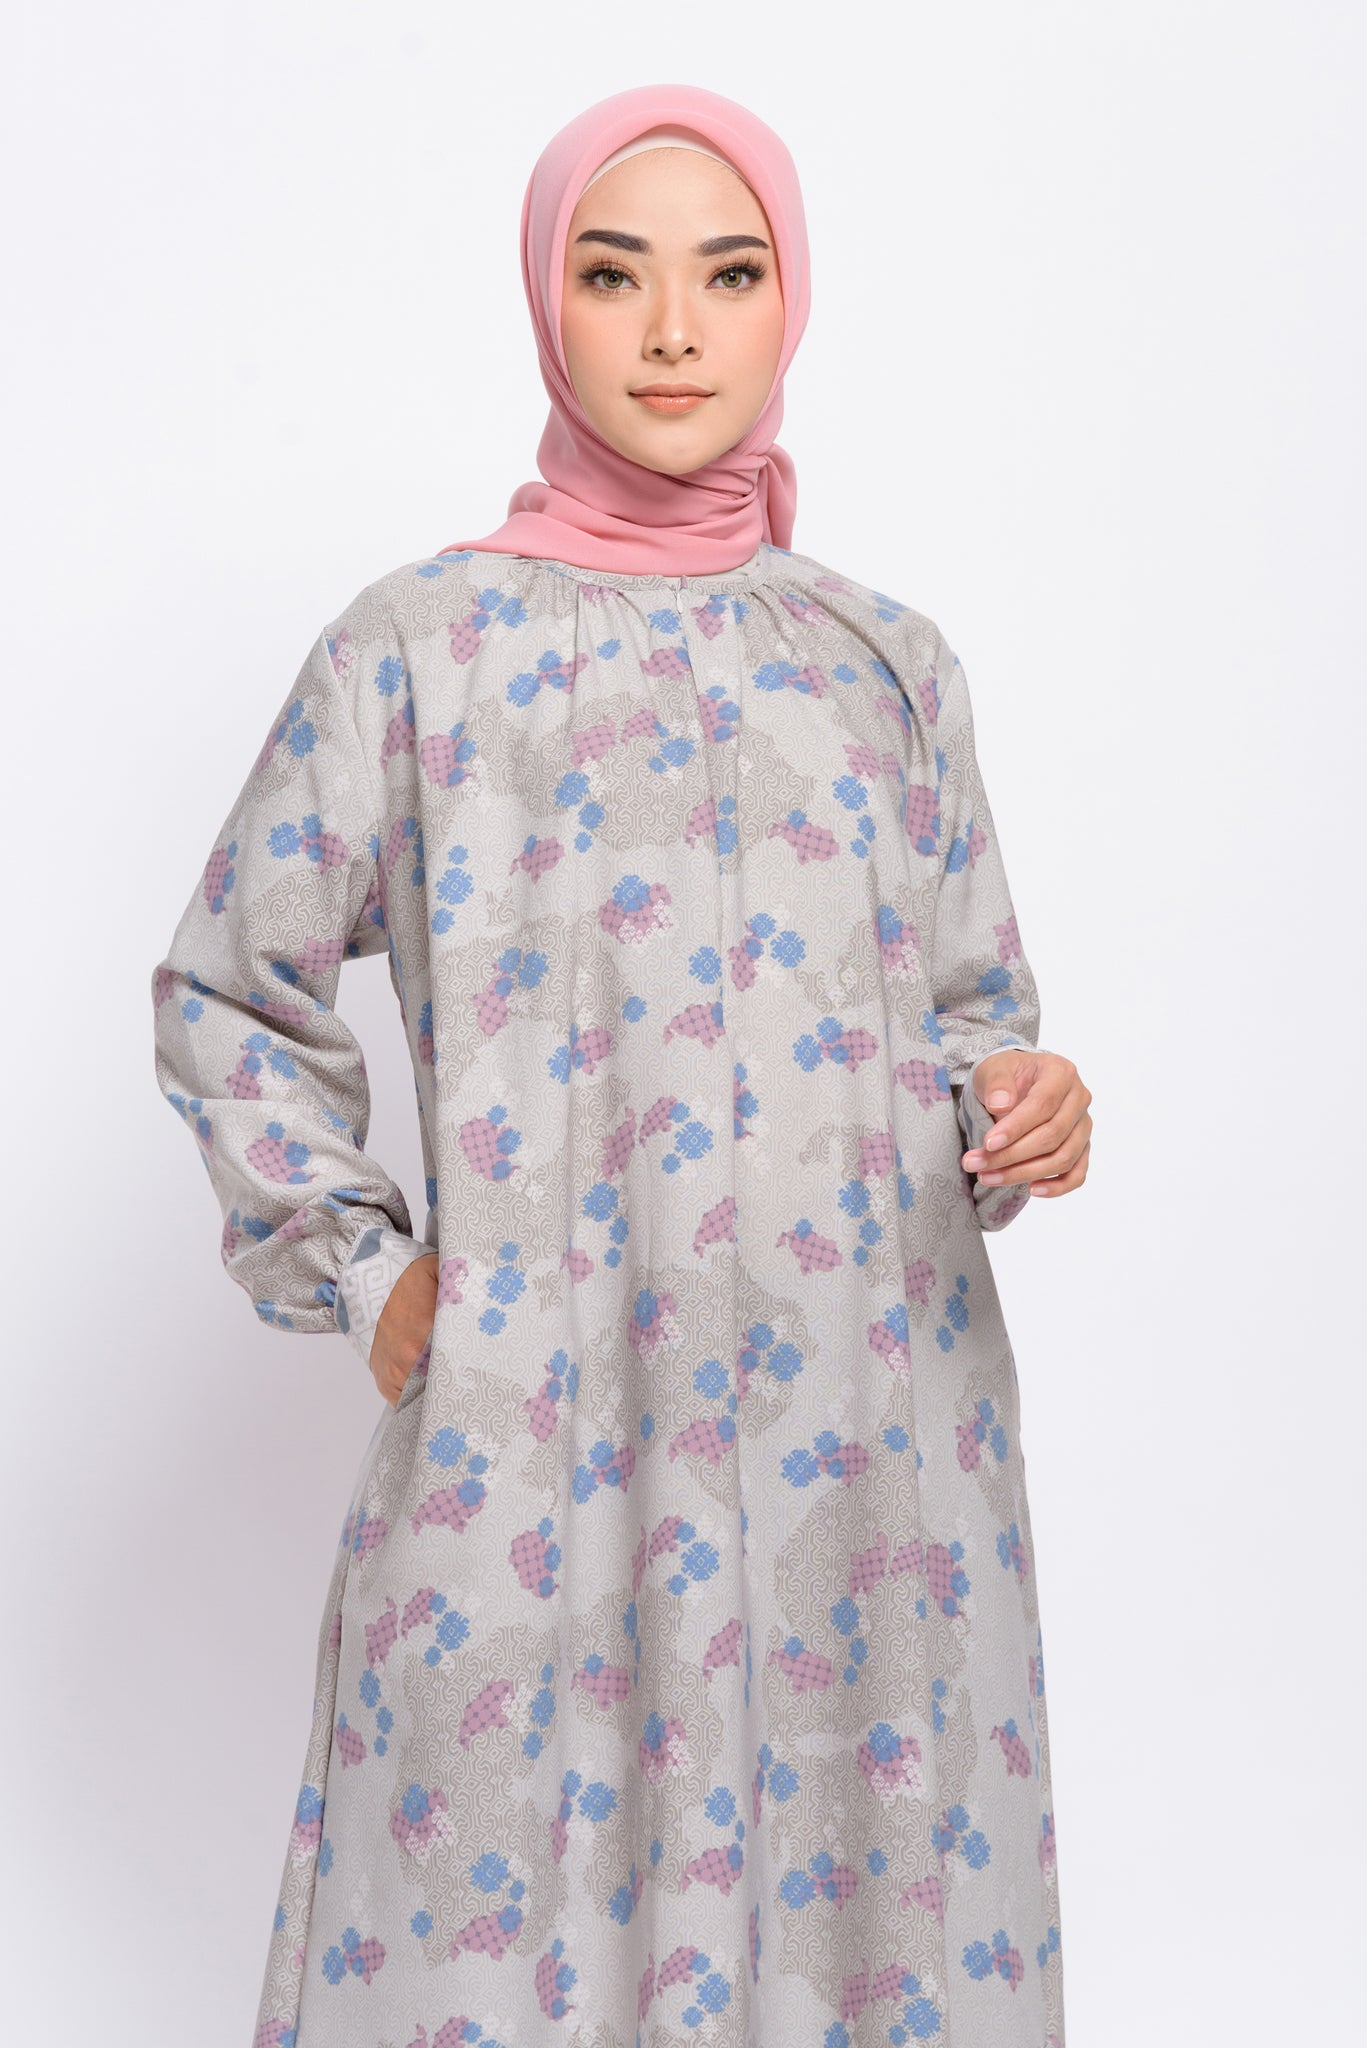 ZM - Gavia Grey Dress - Jelita Indonesia - Edisi Makassar